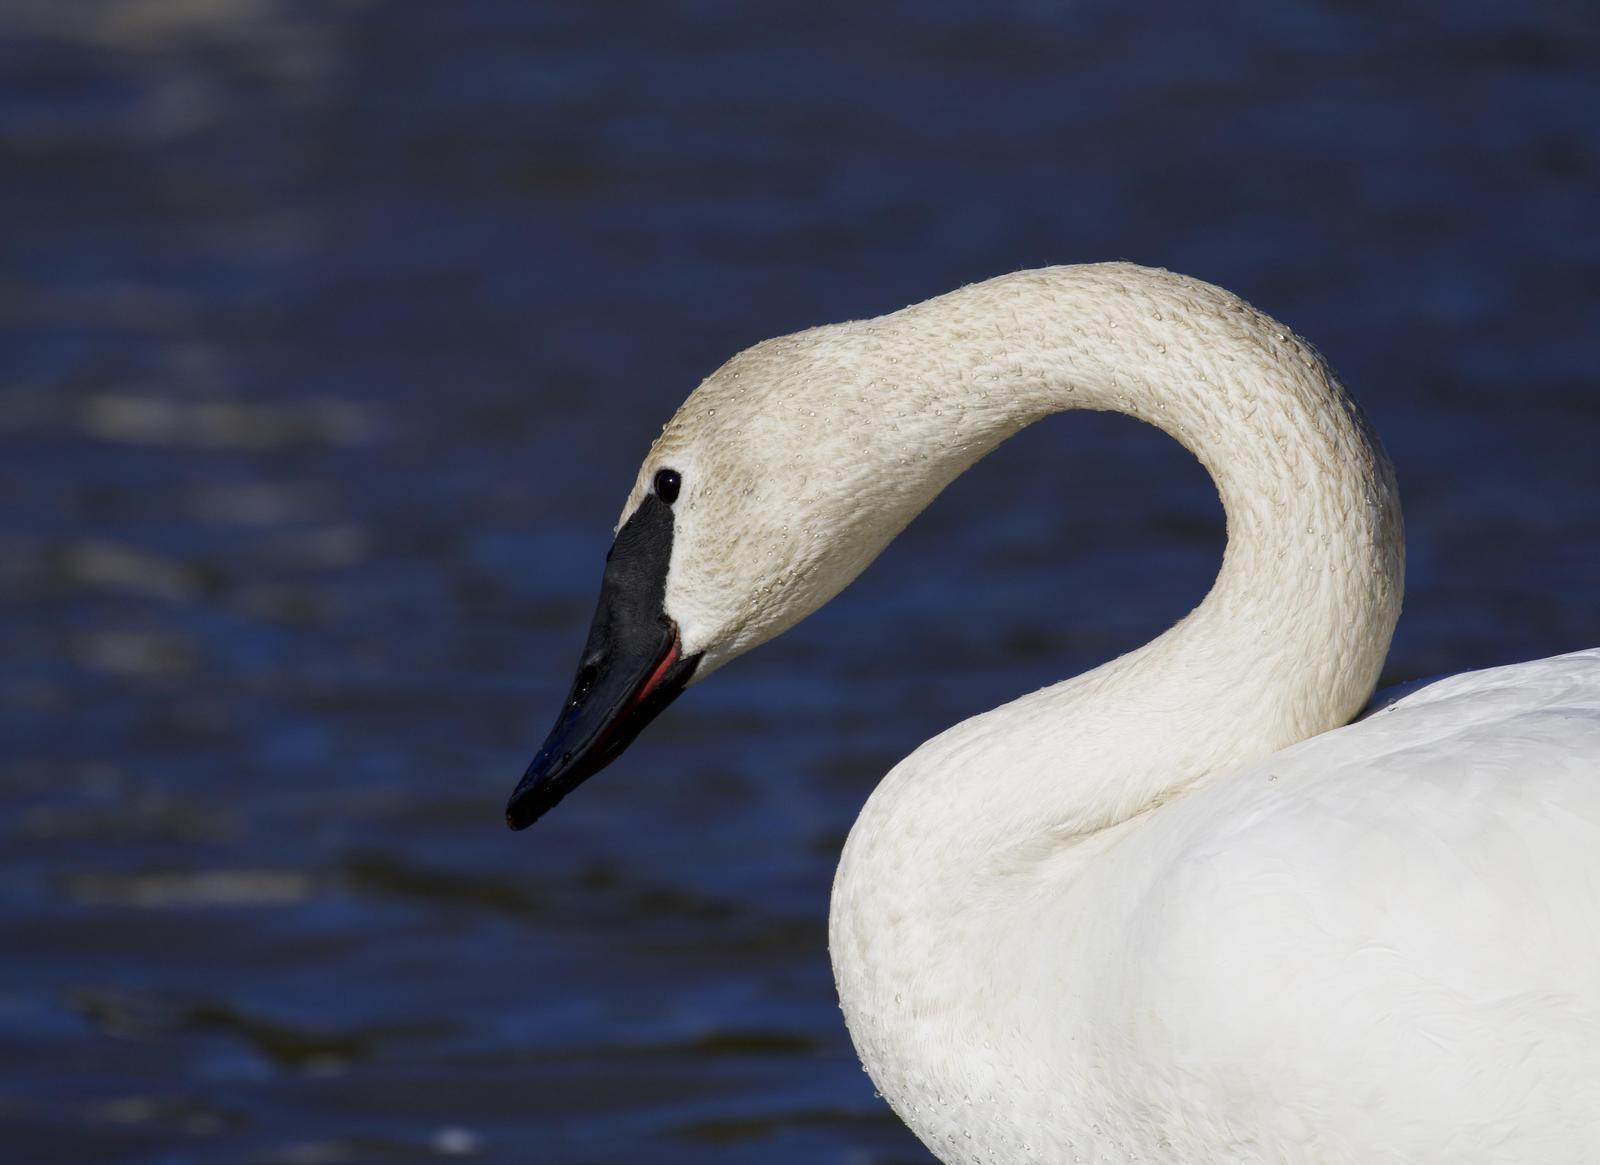 Trumpeter Swan Photo by